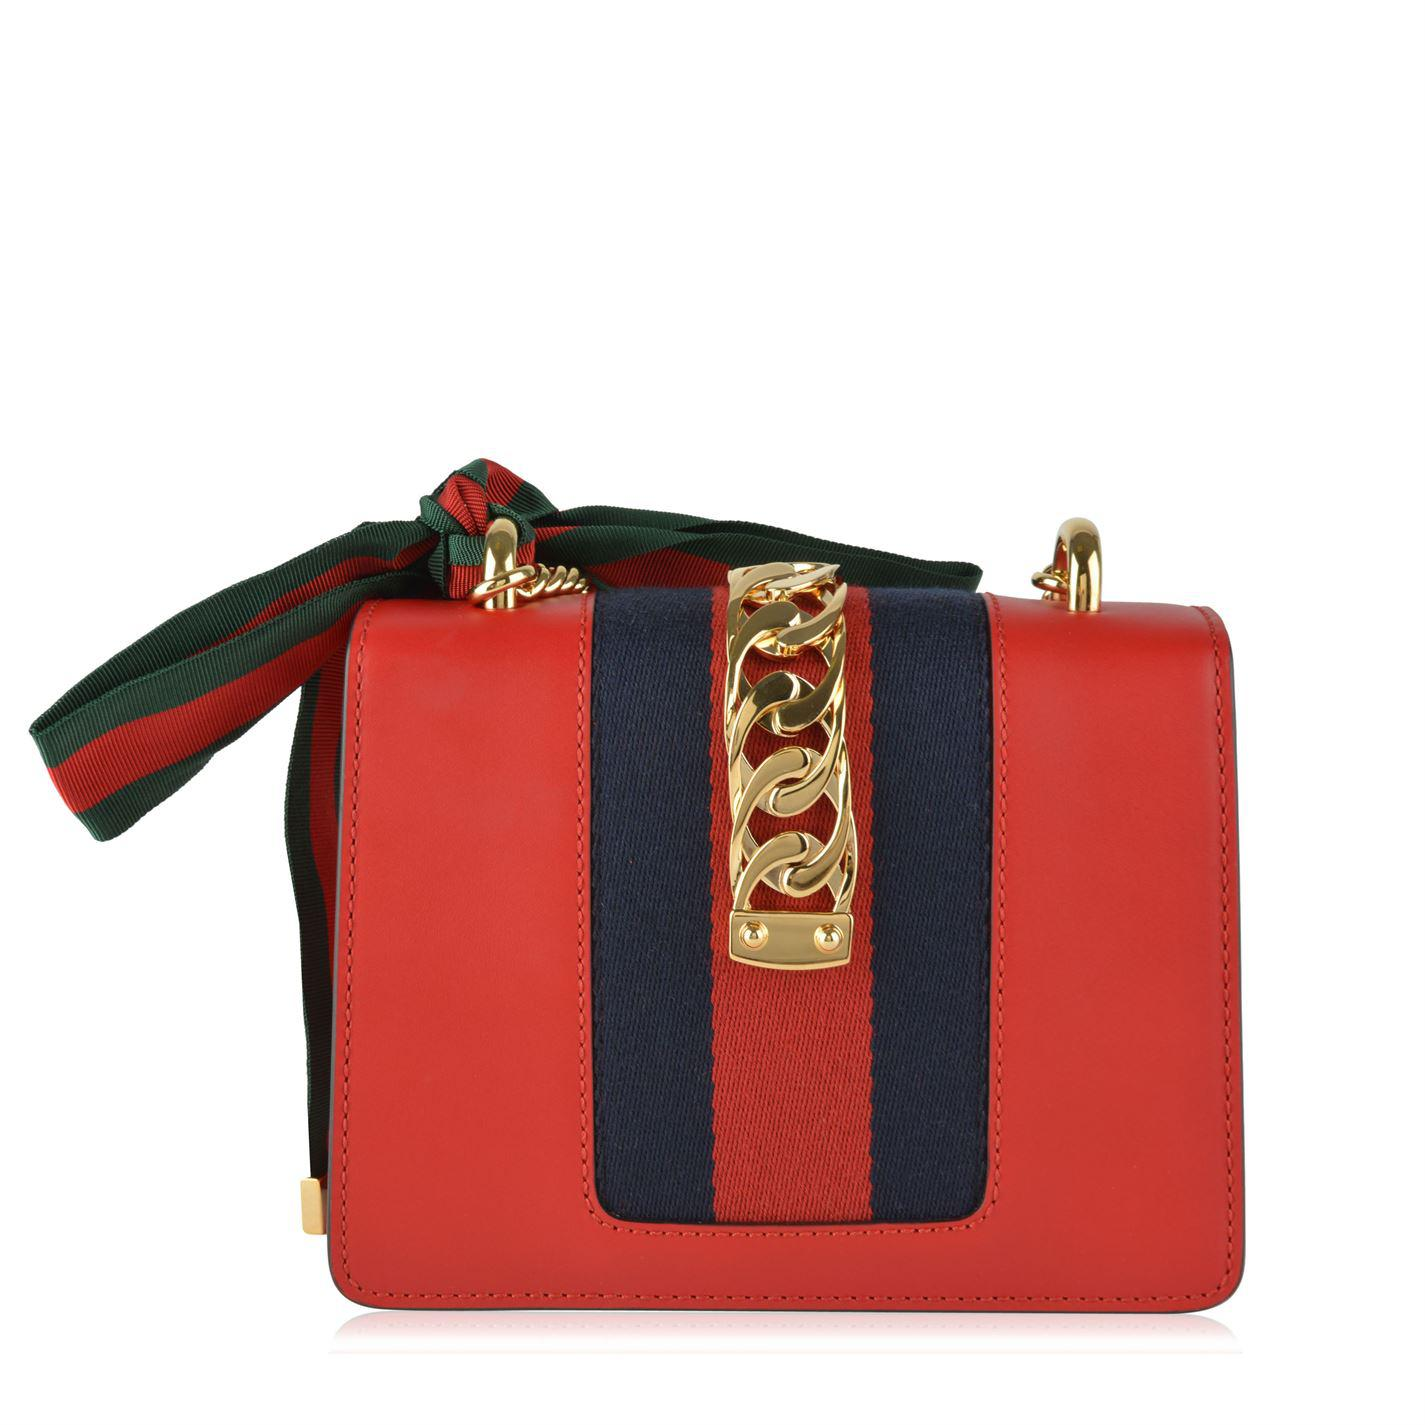 a38971c12c14a Gucci - Red Mini Sylvie Leather Shoulder Bag - Lyst. View fullscreen